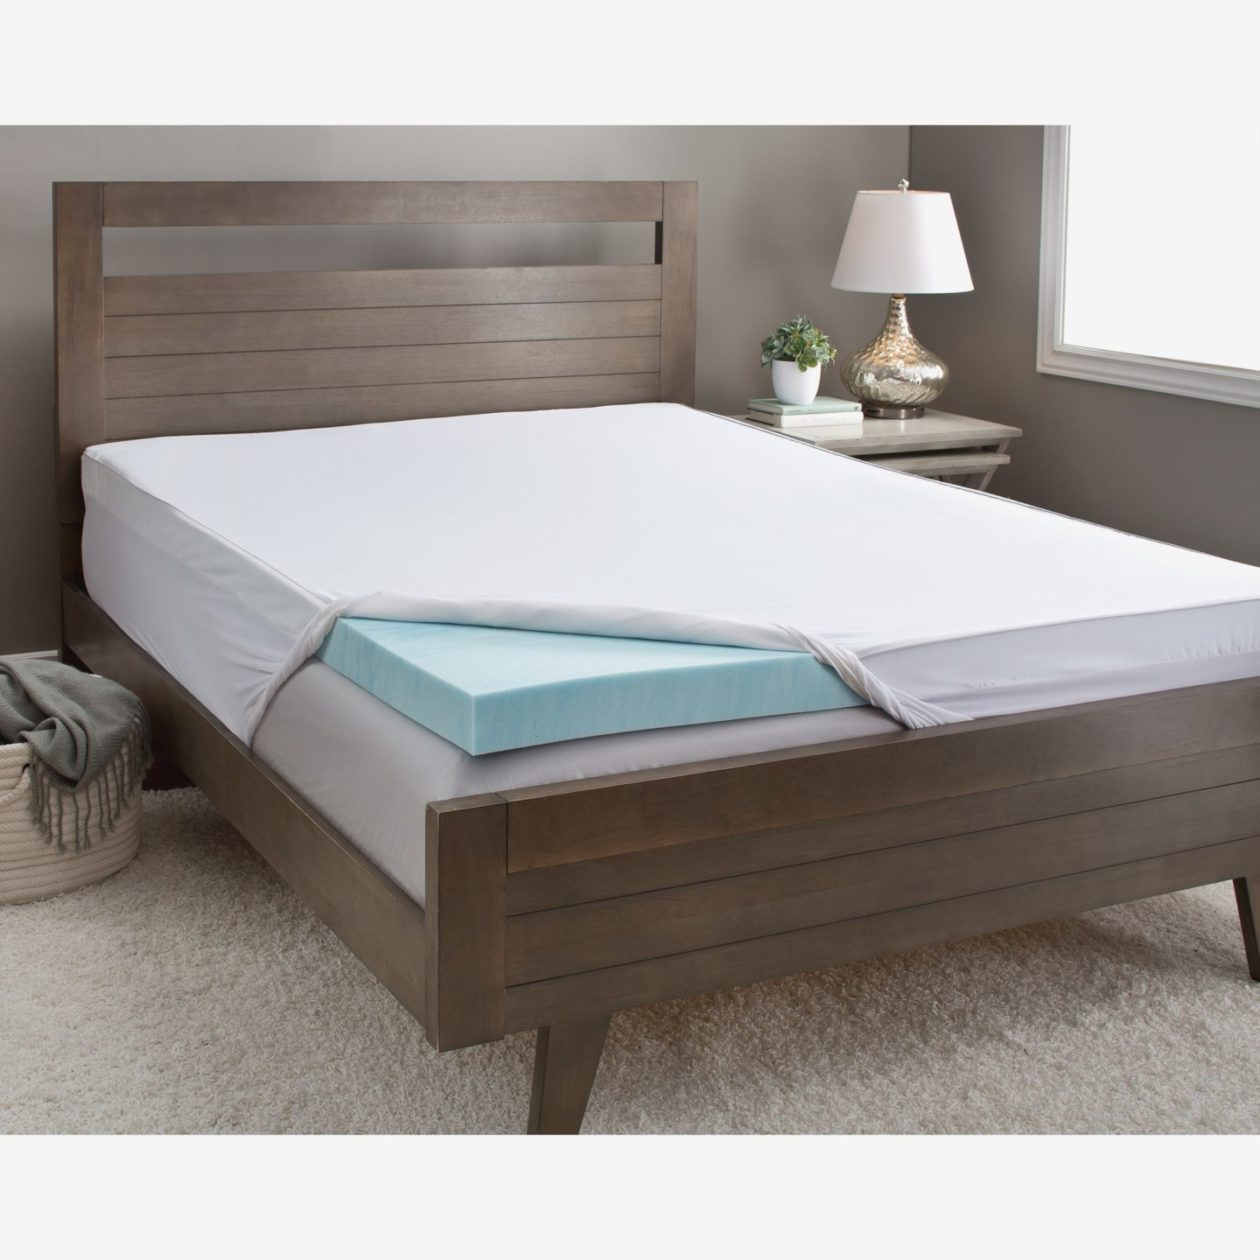 Buy Mattress Topper How To Compare Memory Foam Mattress Toppers Overstock